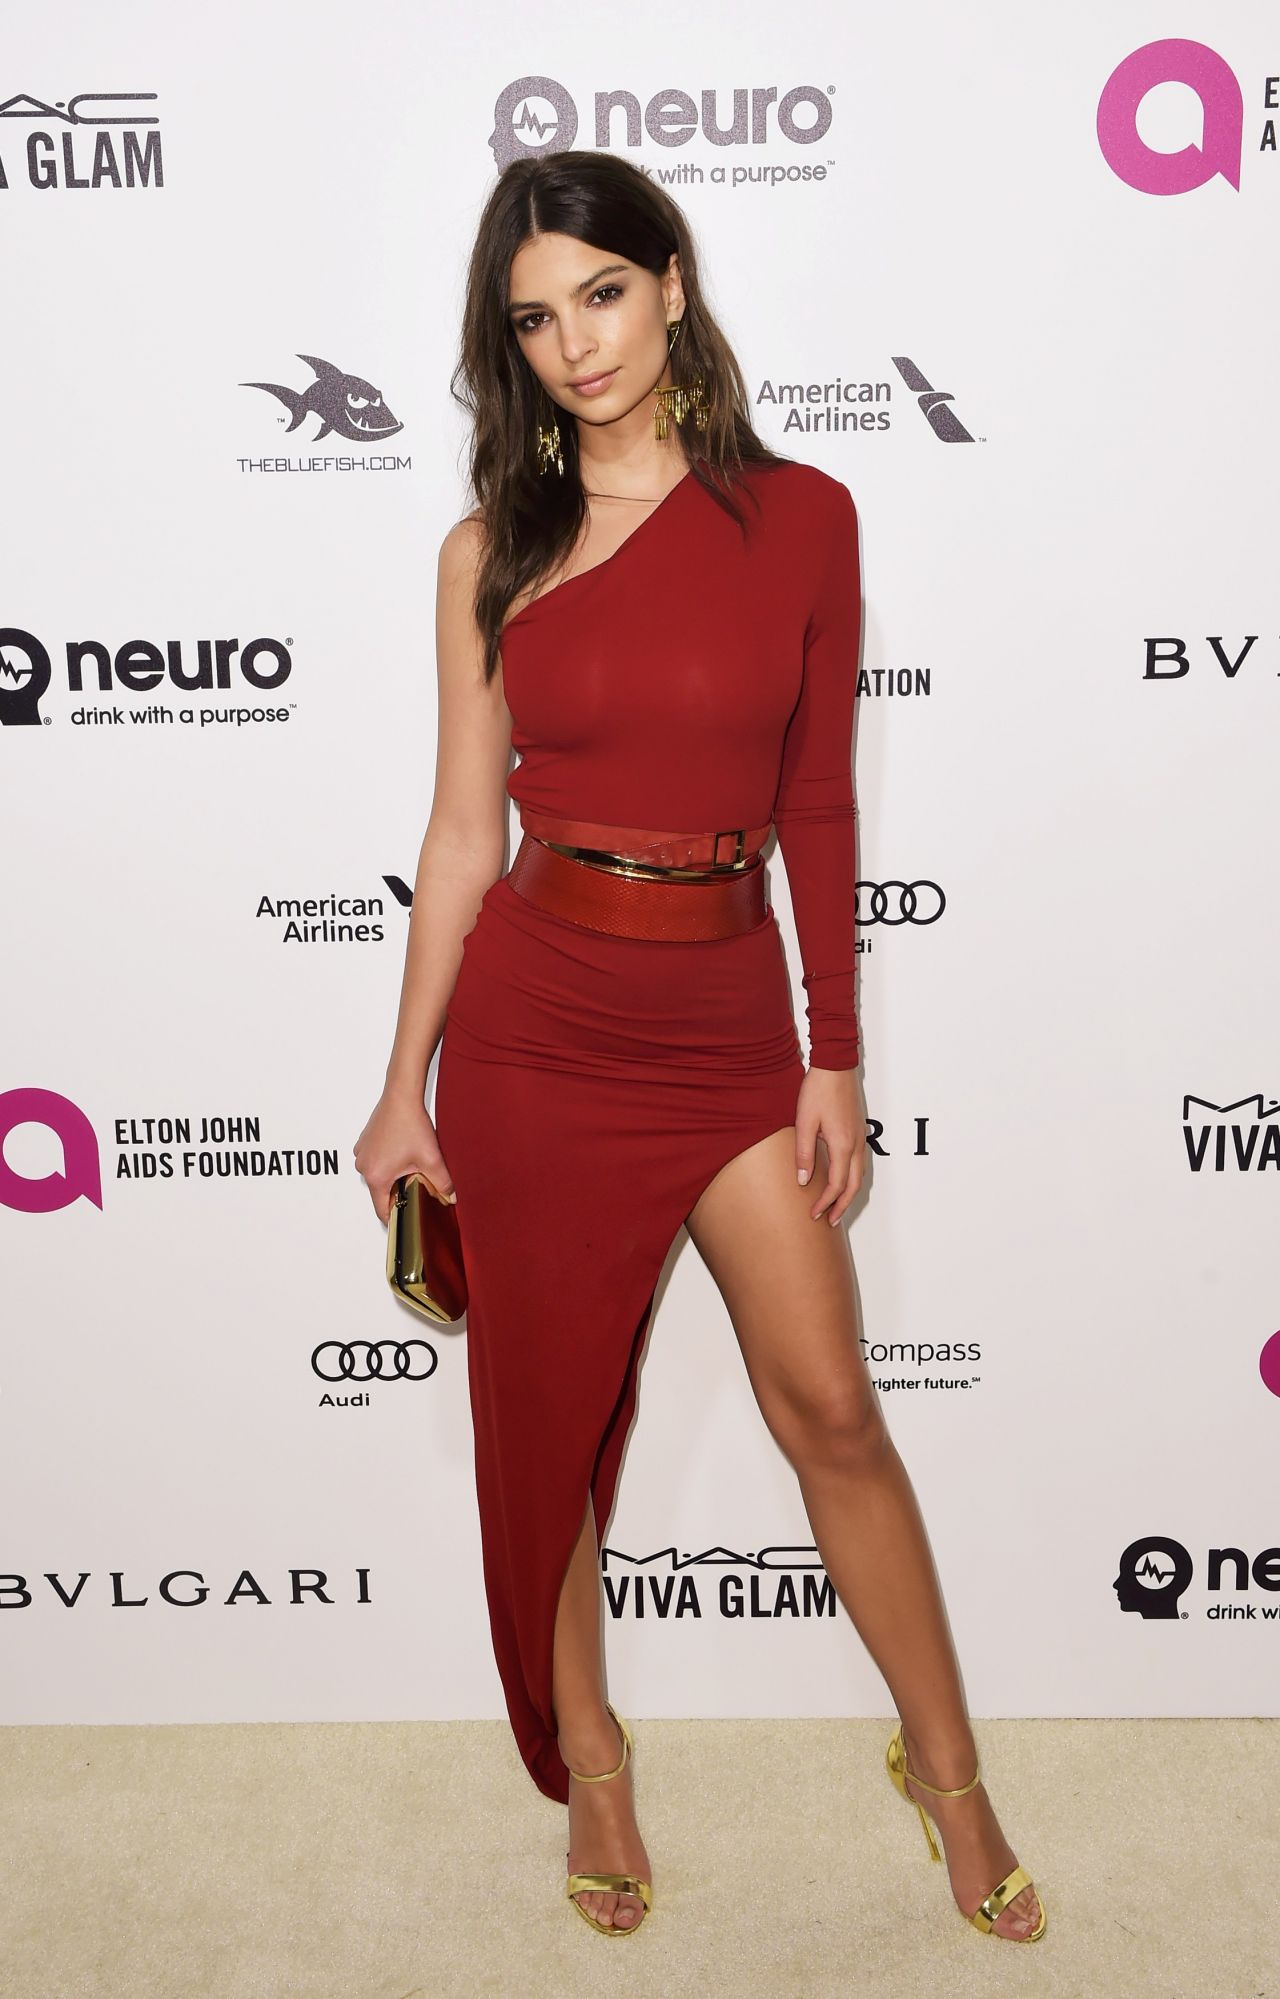 emily-ratajkowski-2016-elton-john-aids-foundation-s-oscar-viewing-party-in-west-hollywood-ca-2